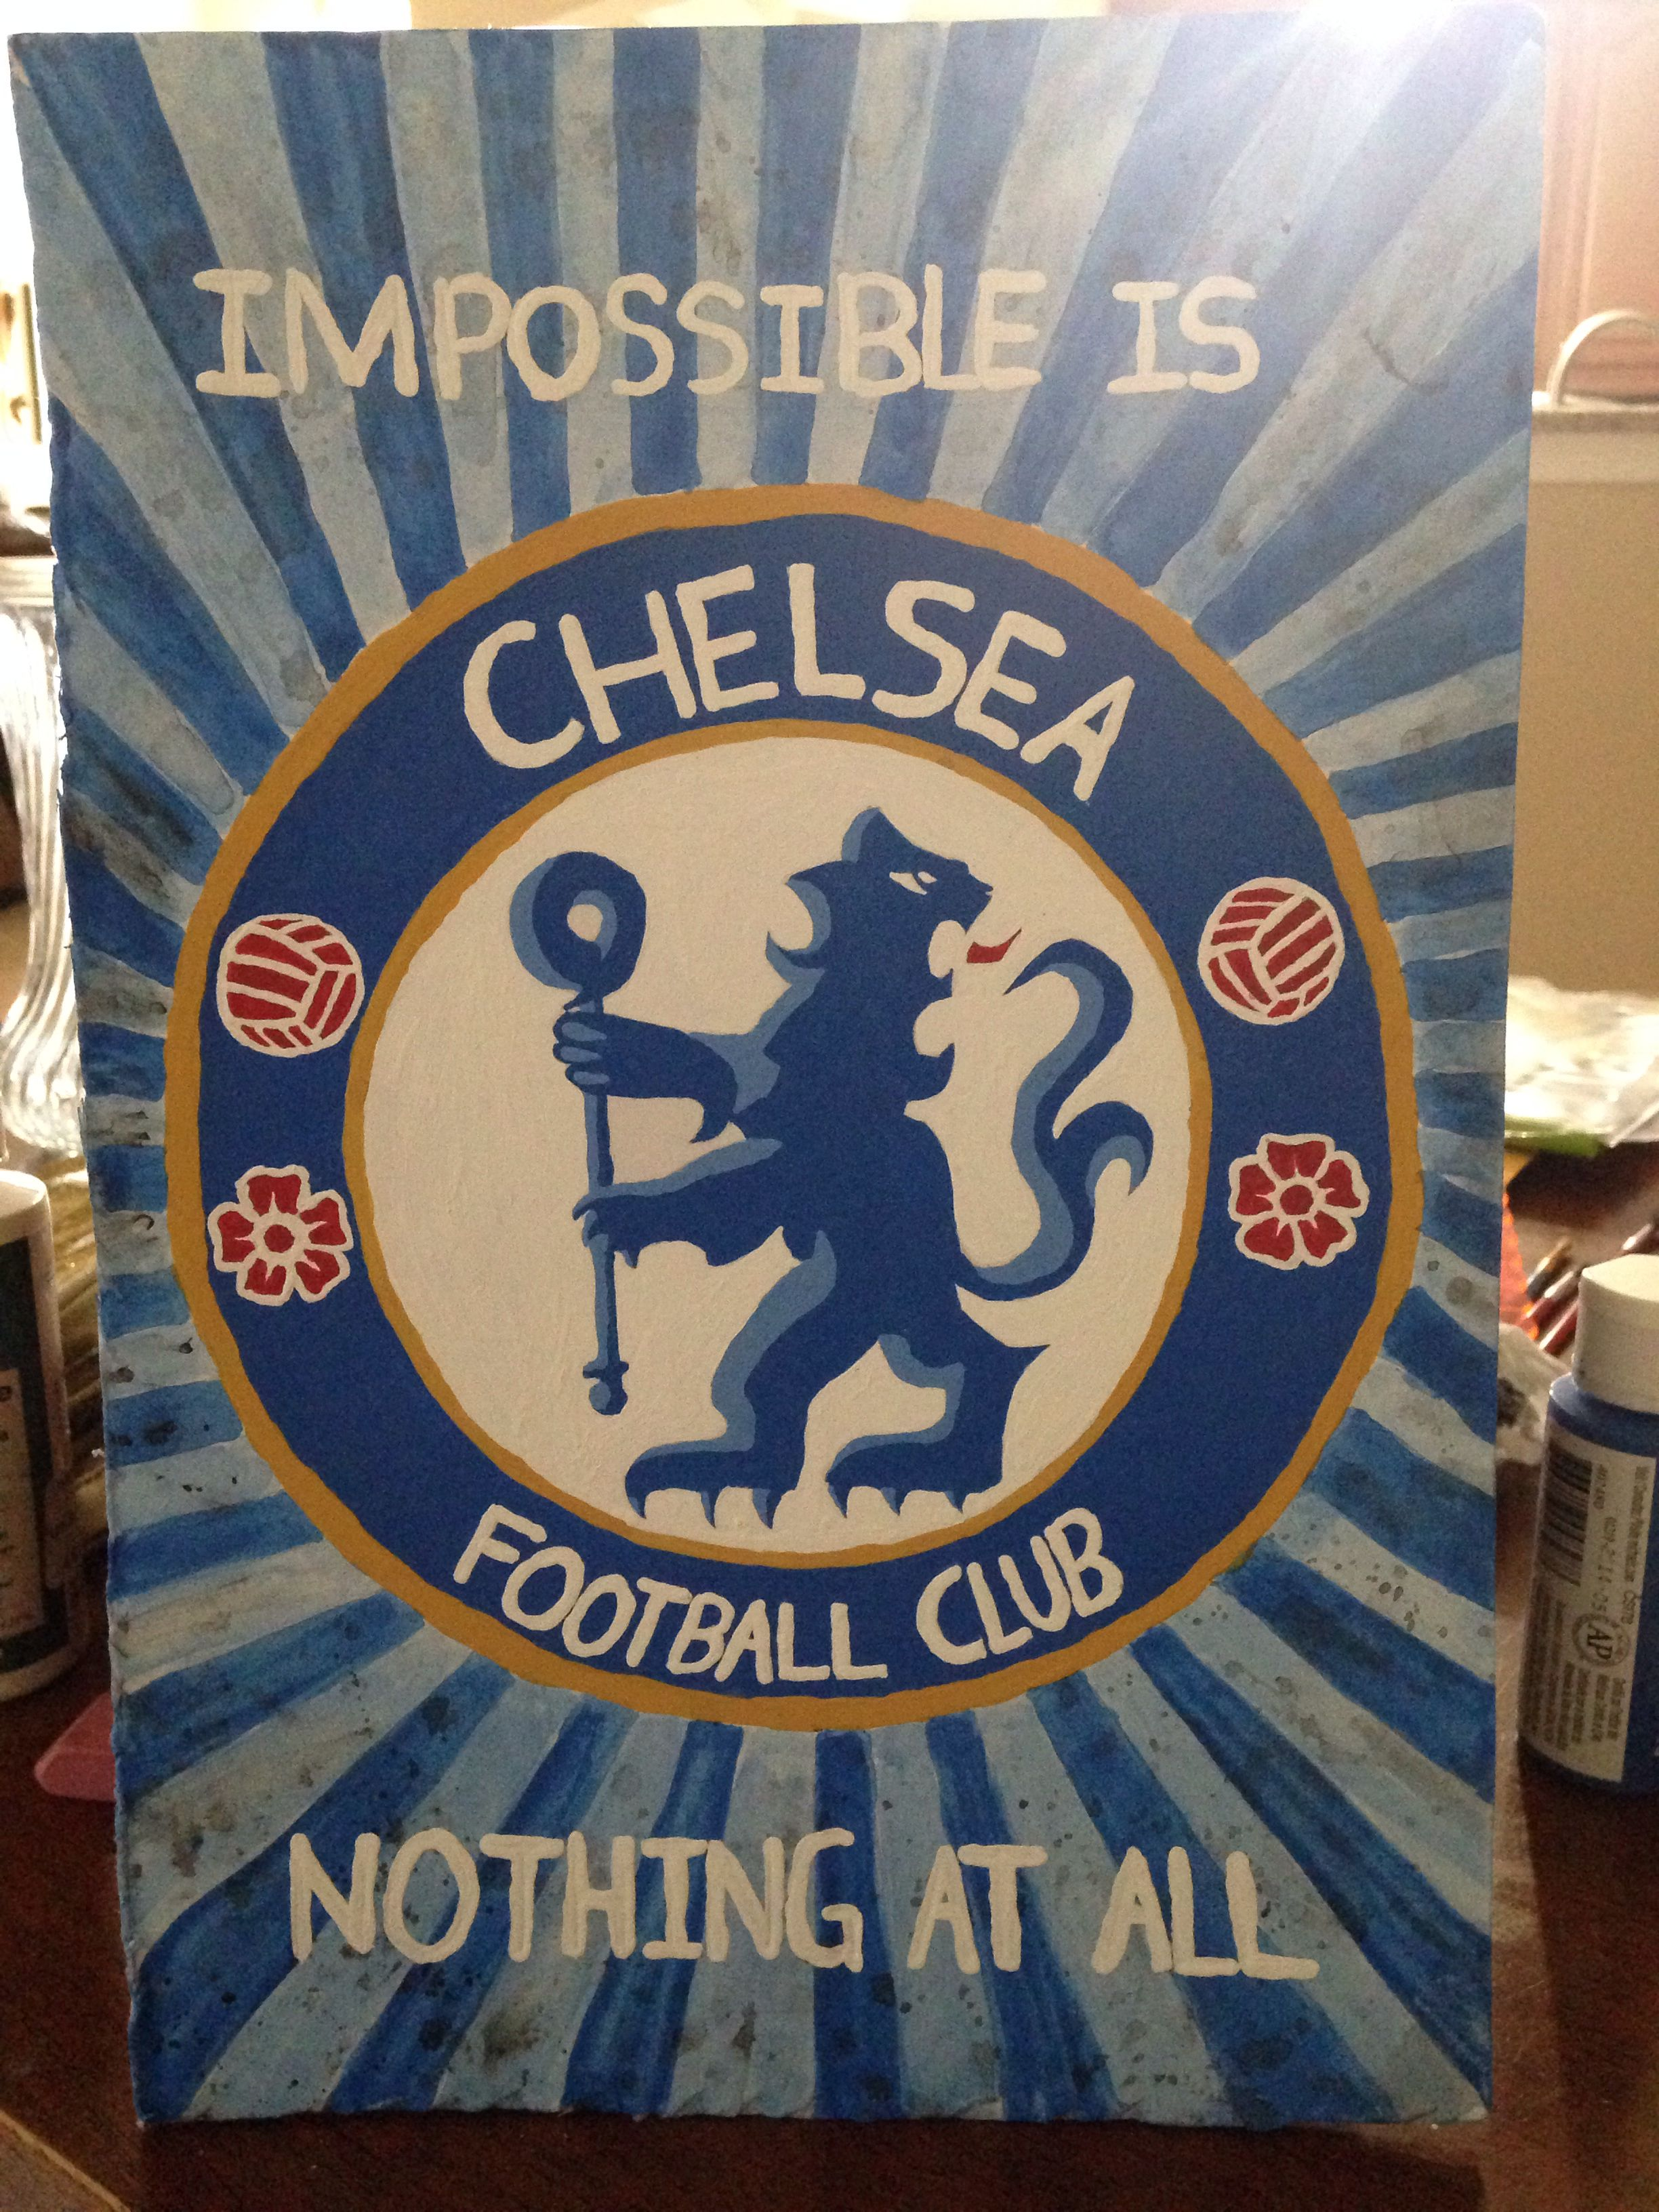 Chelsea Soccer Emblem Made With Acrylic Paints On Foam Board In